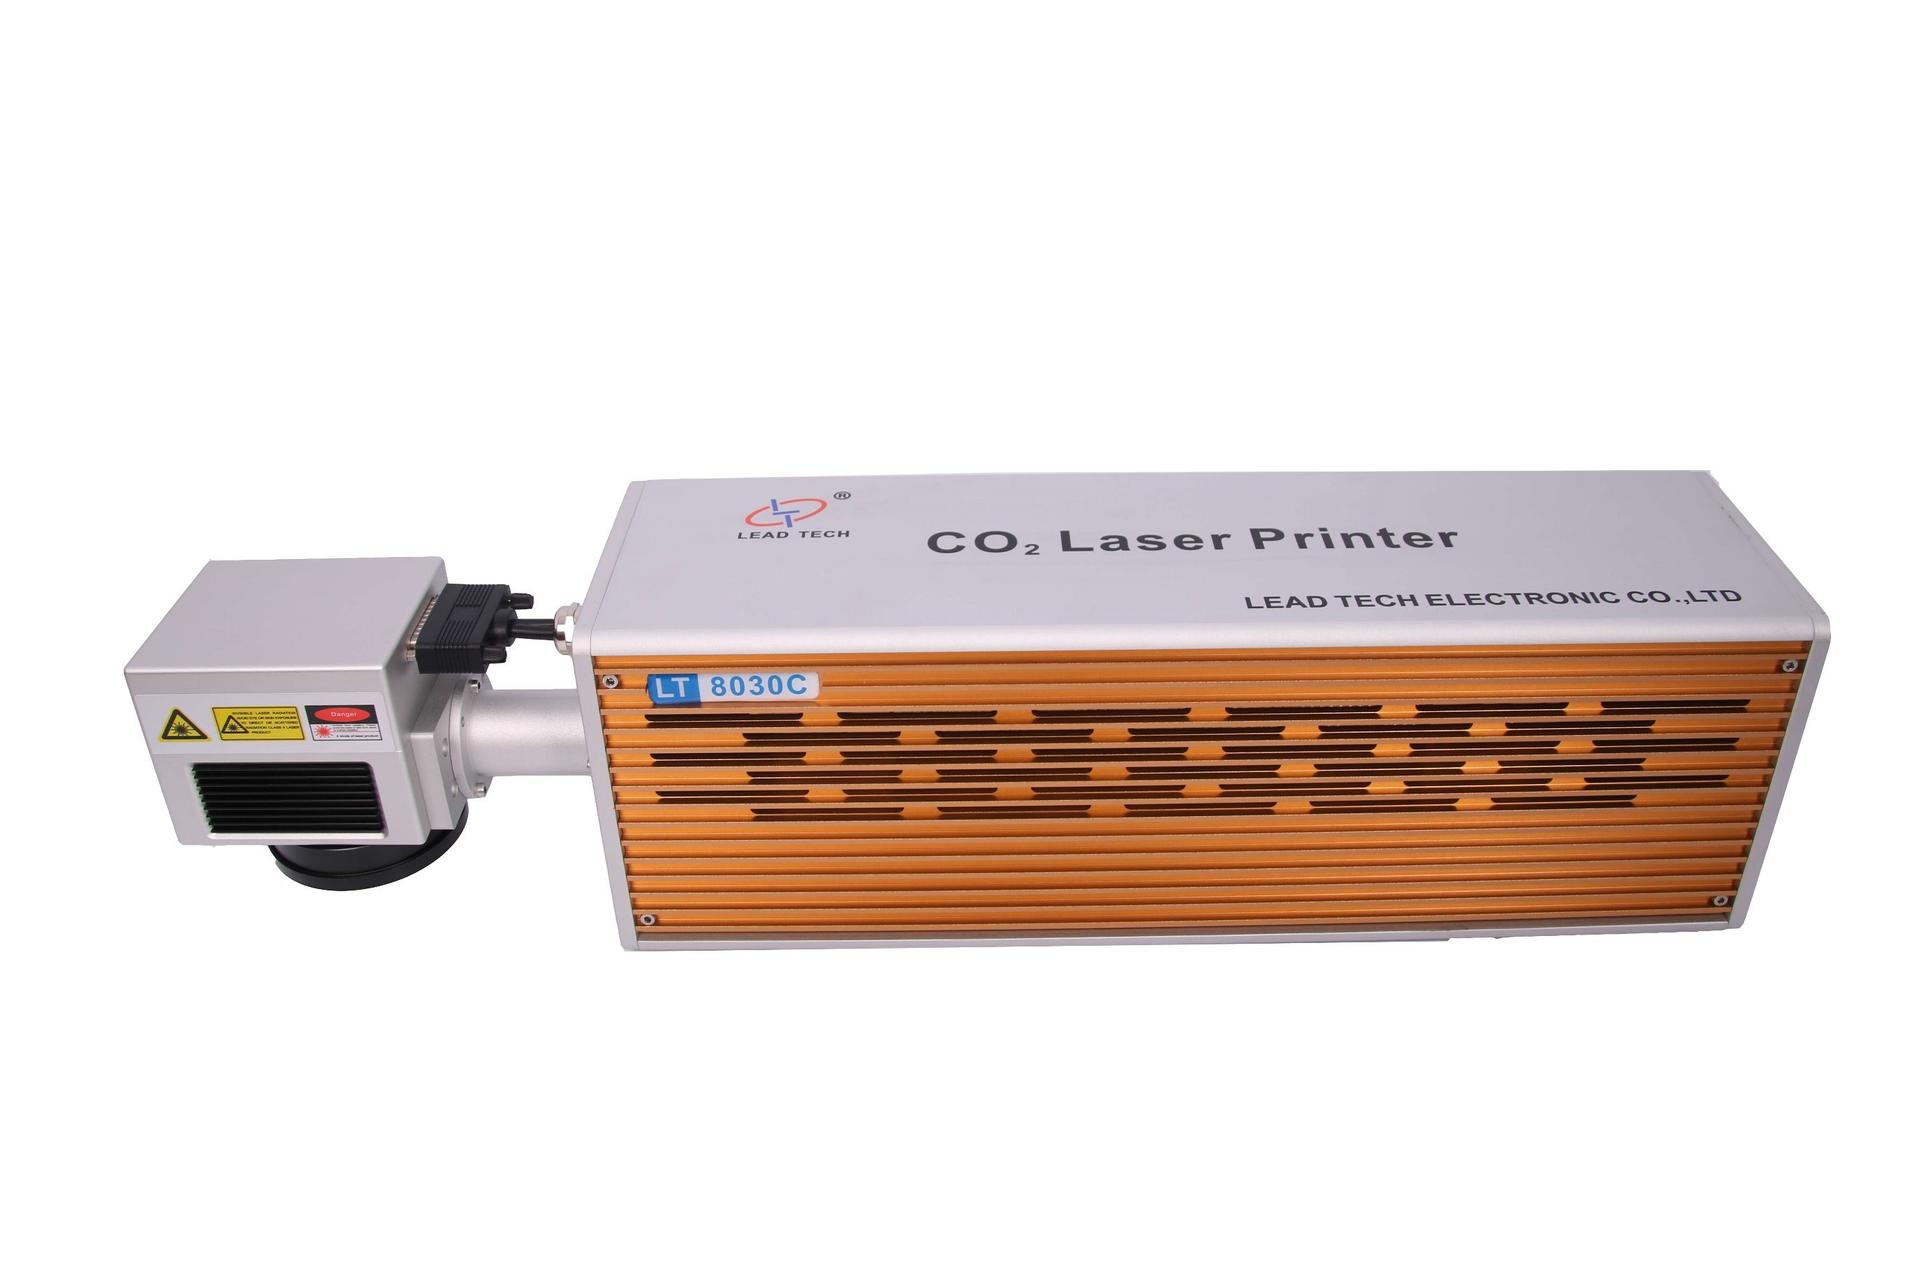 Lead Tech Lt8020c/Lt8030c CO2 20W/30W Style Digital Laser Printer for Plastic Logo Metal Printing